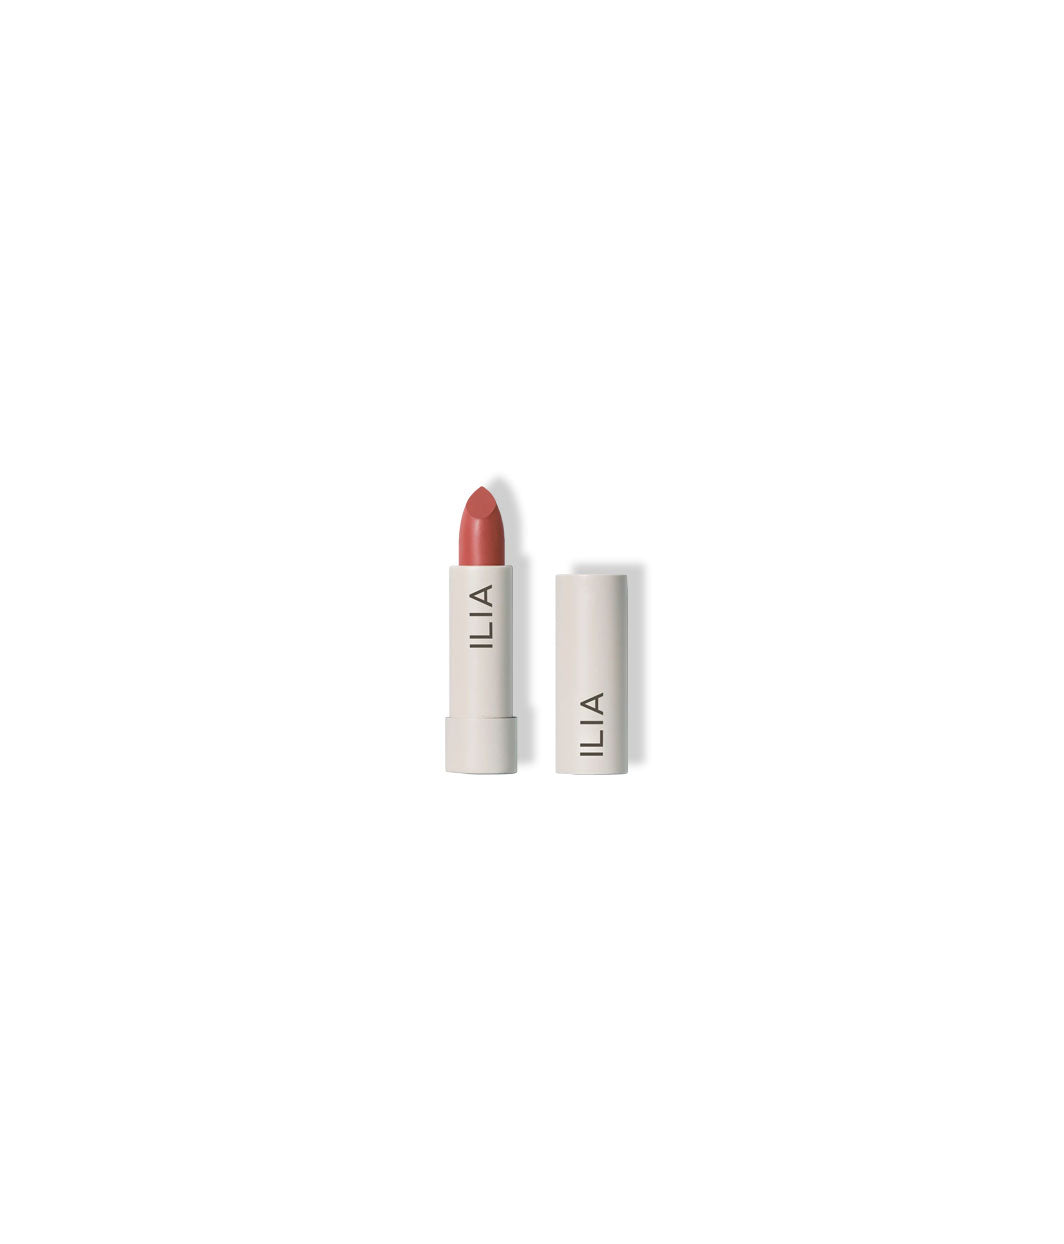 Tinted Lip Conditioner - LEMON LAINE - Lip Tint - Ilia